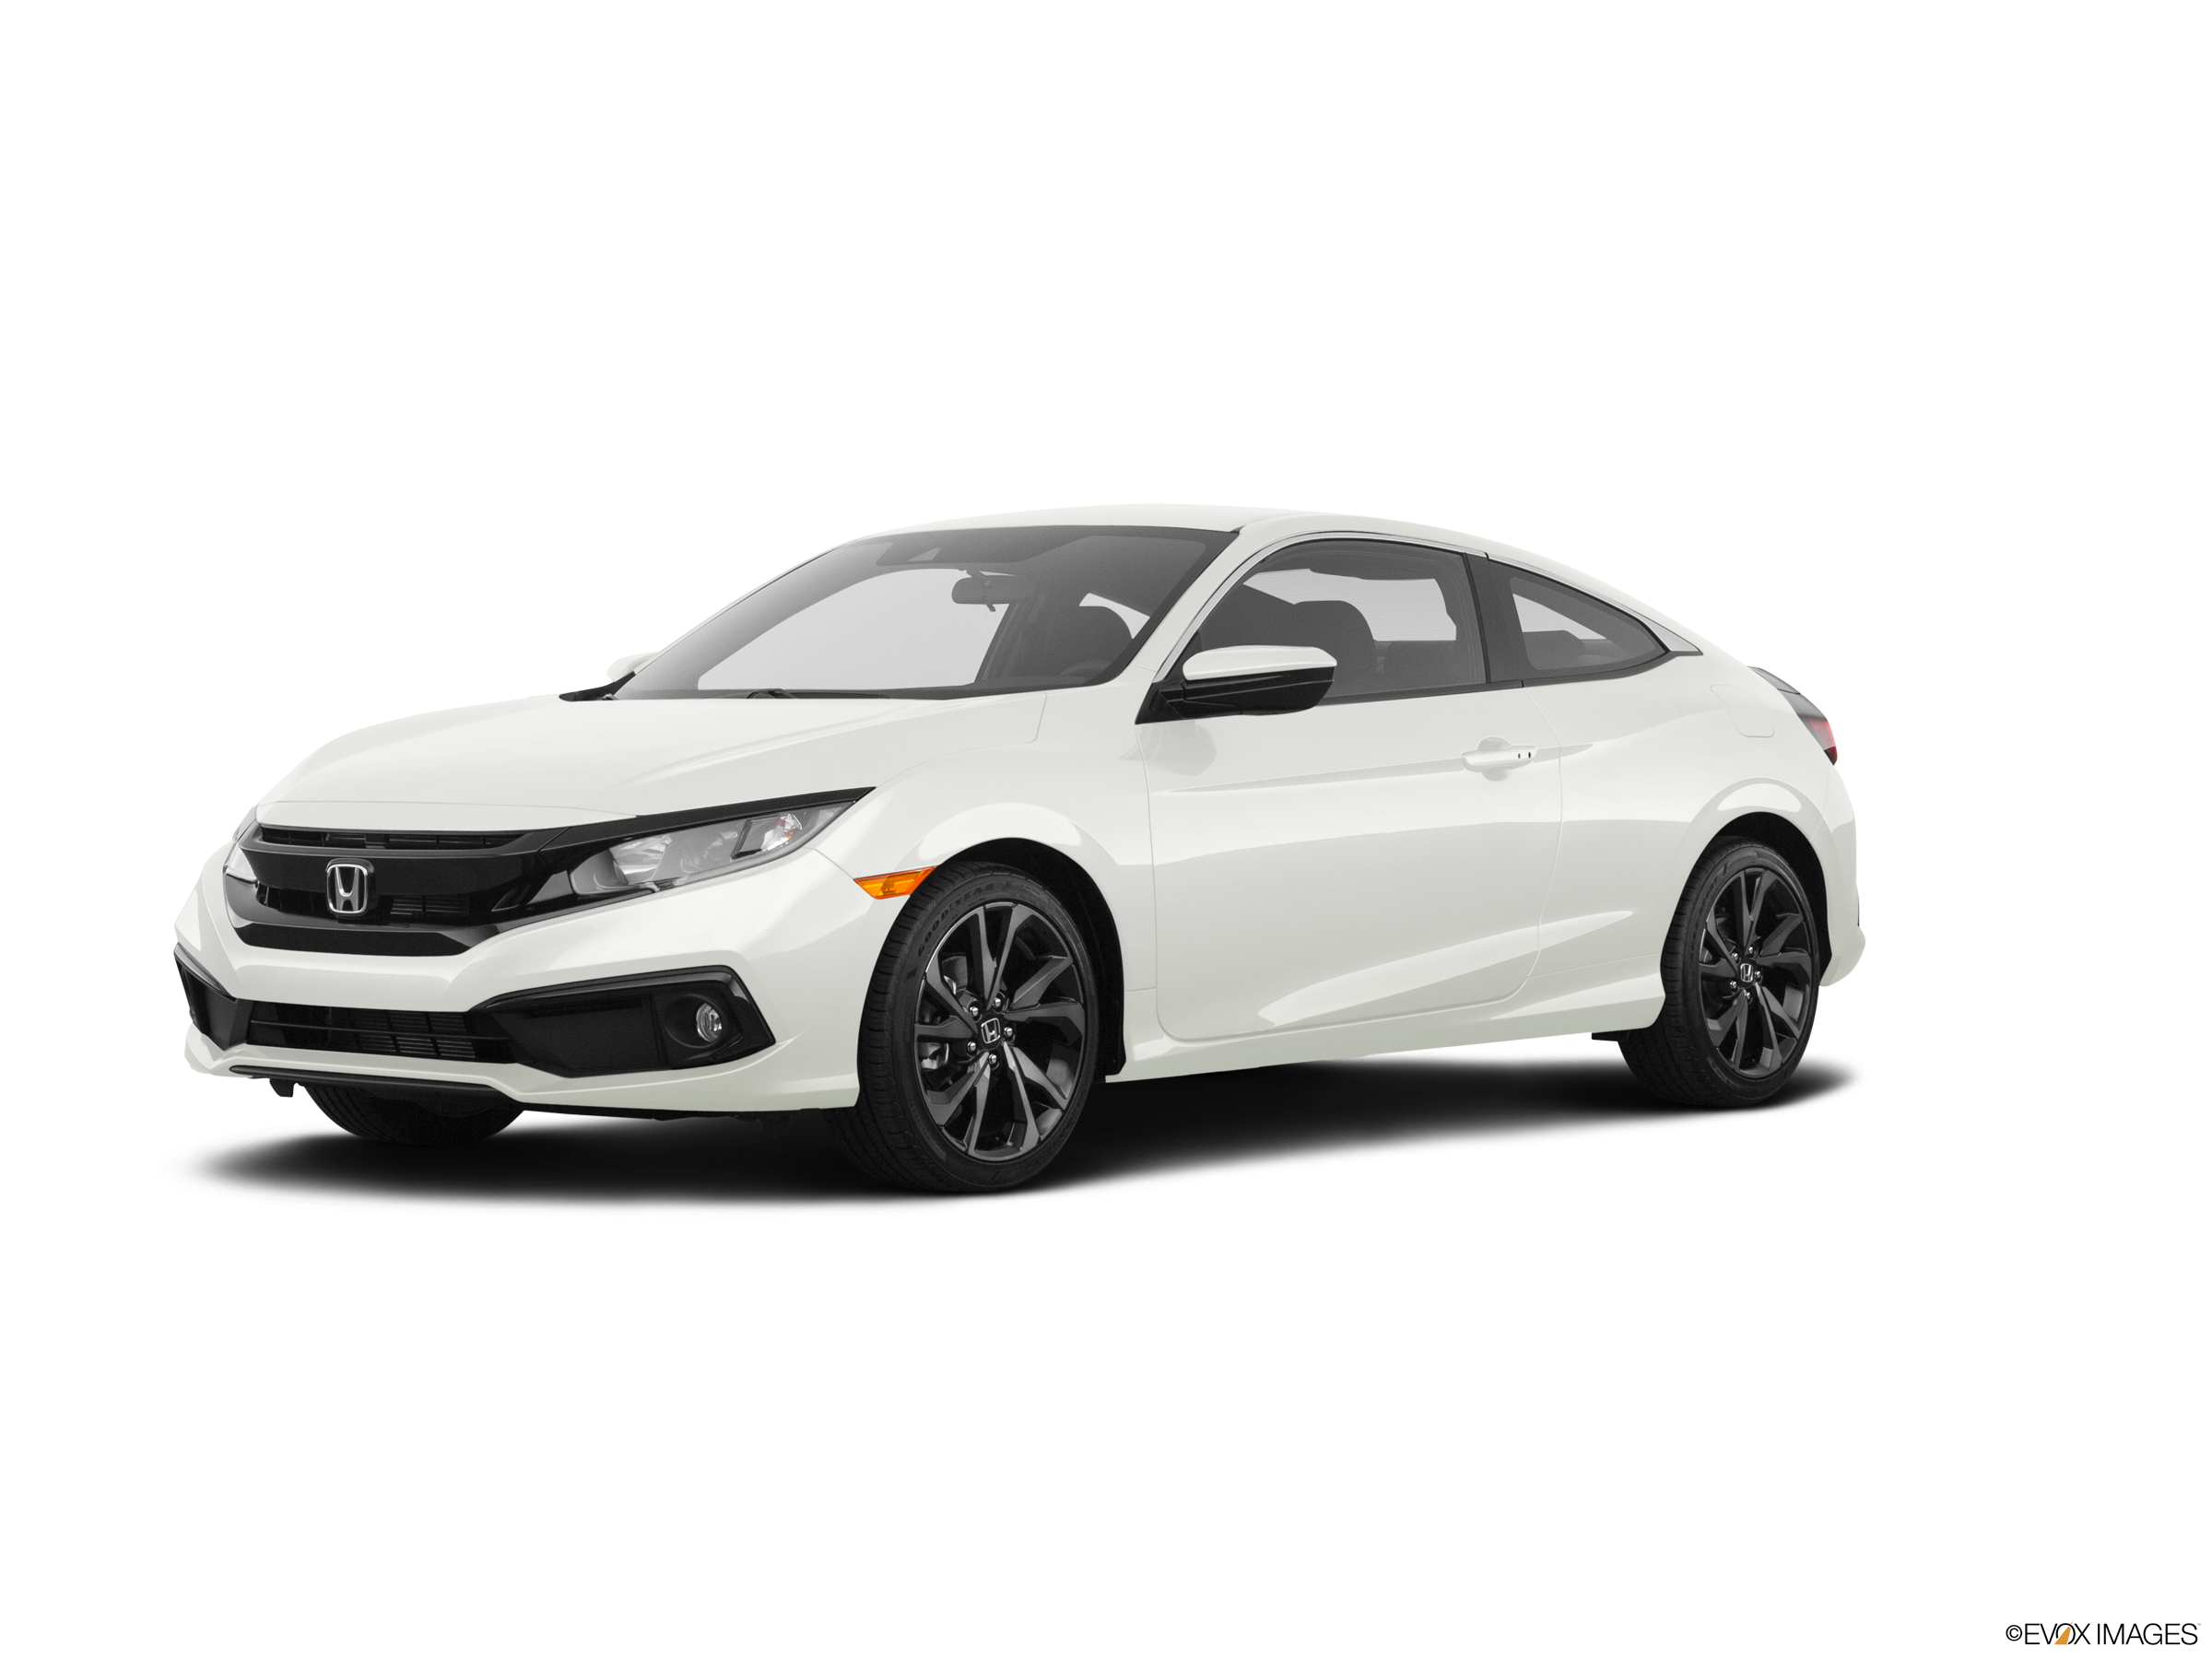 Top Expert Rated Coupes of 2019 - 2019 Honda Civic